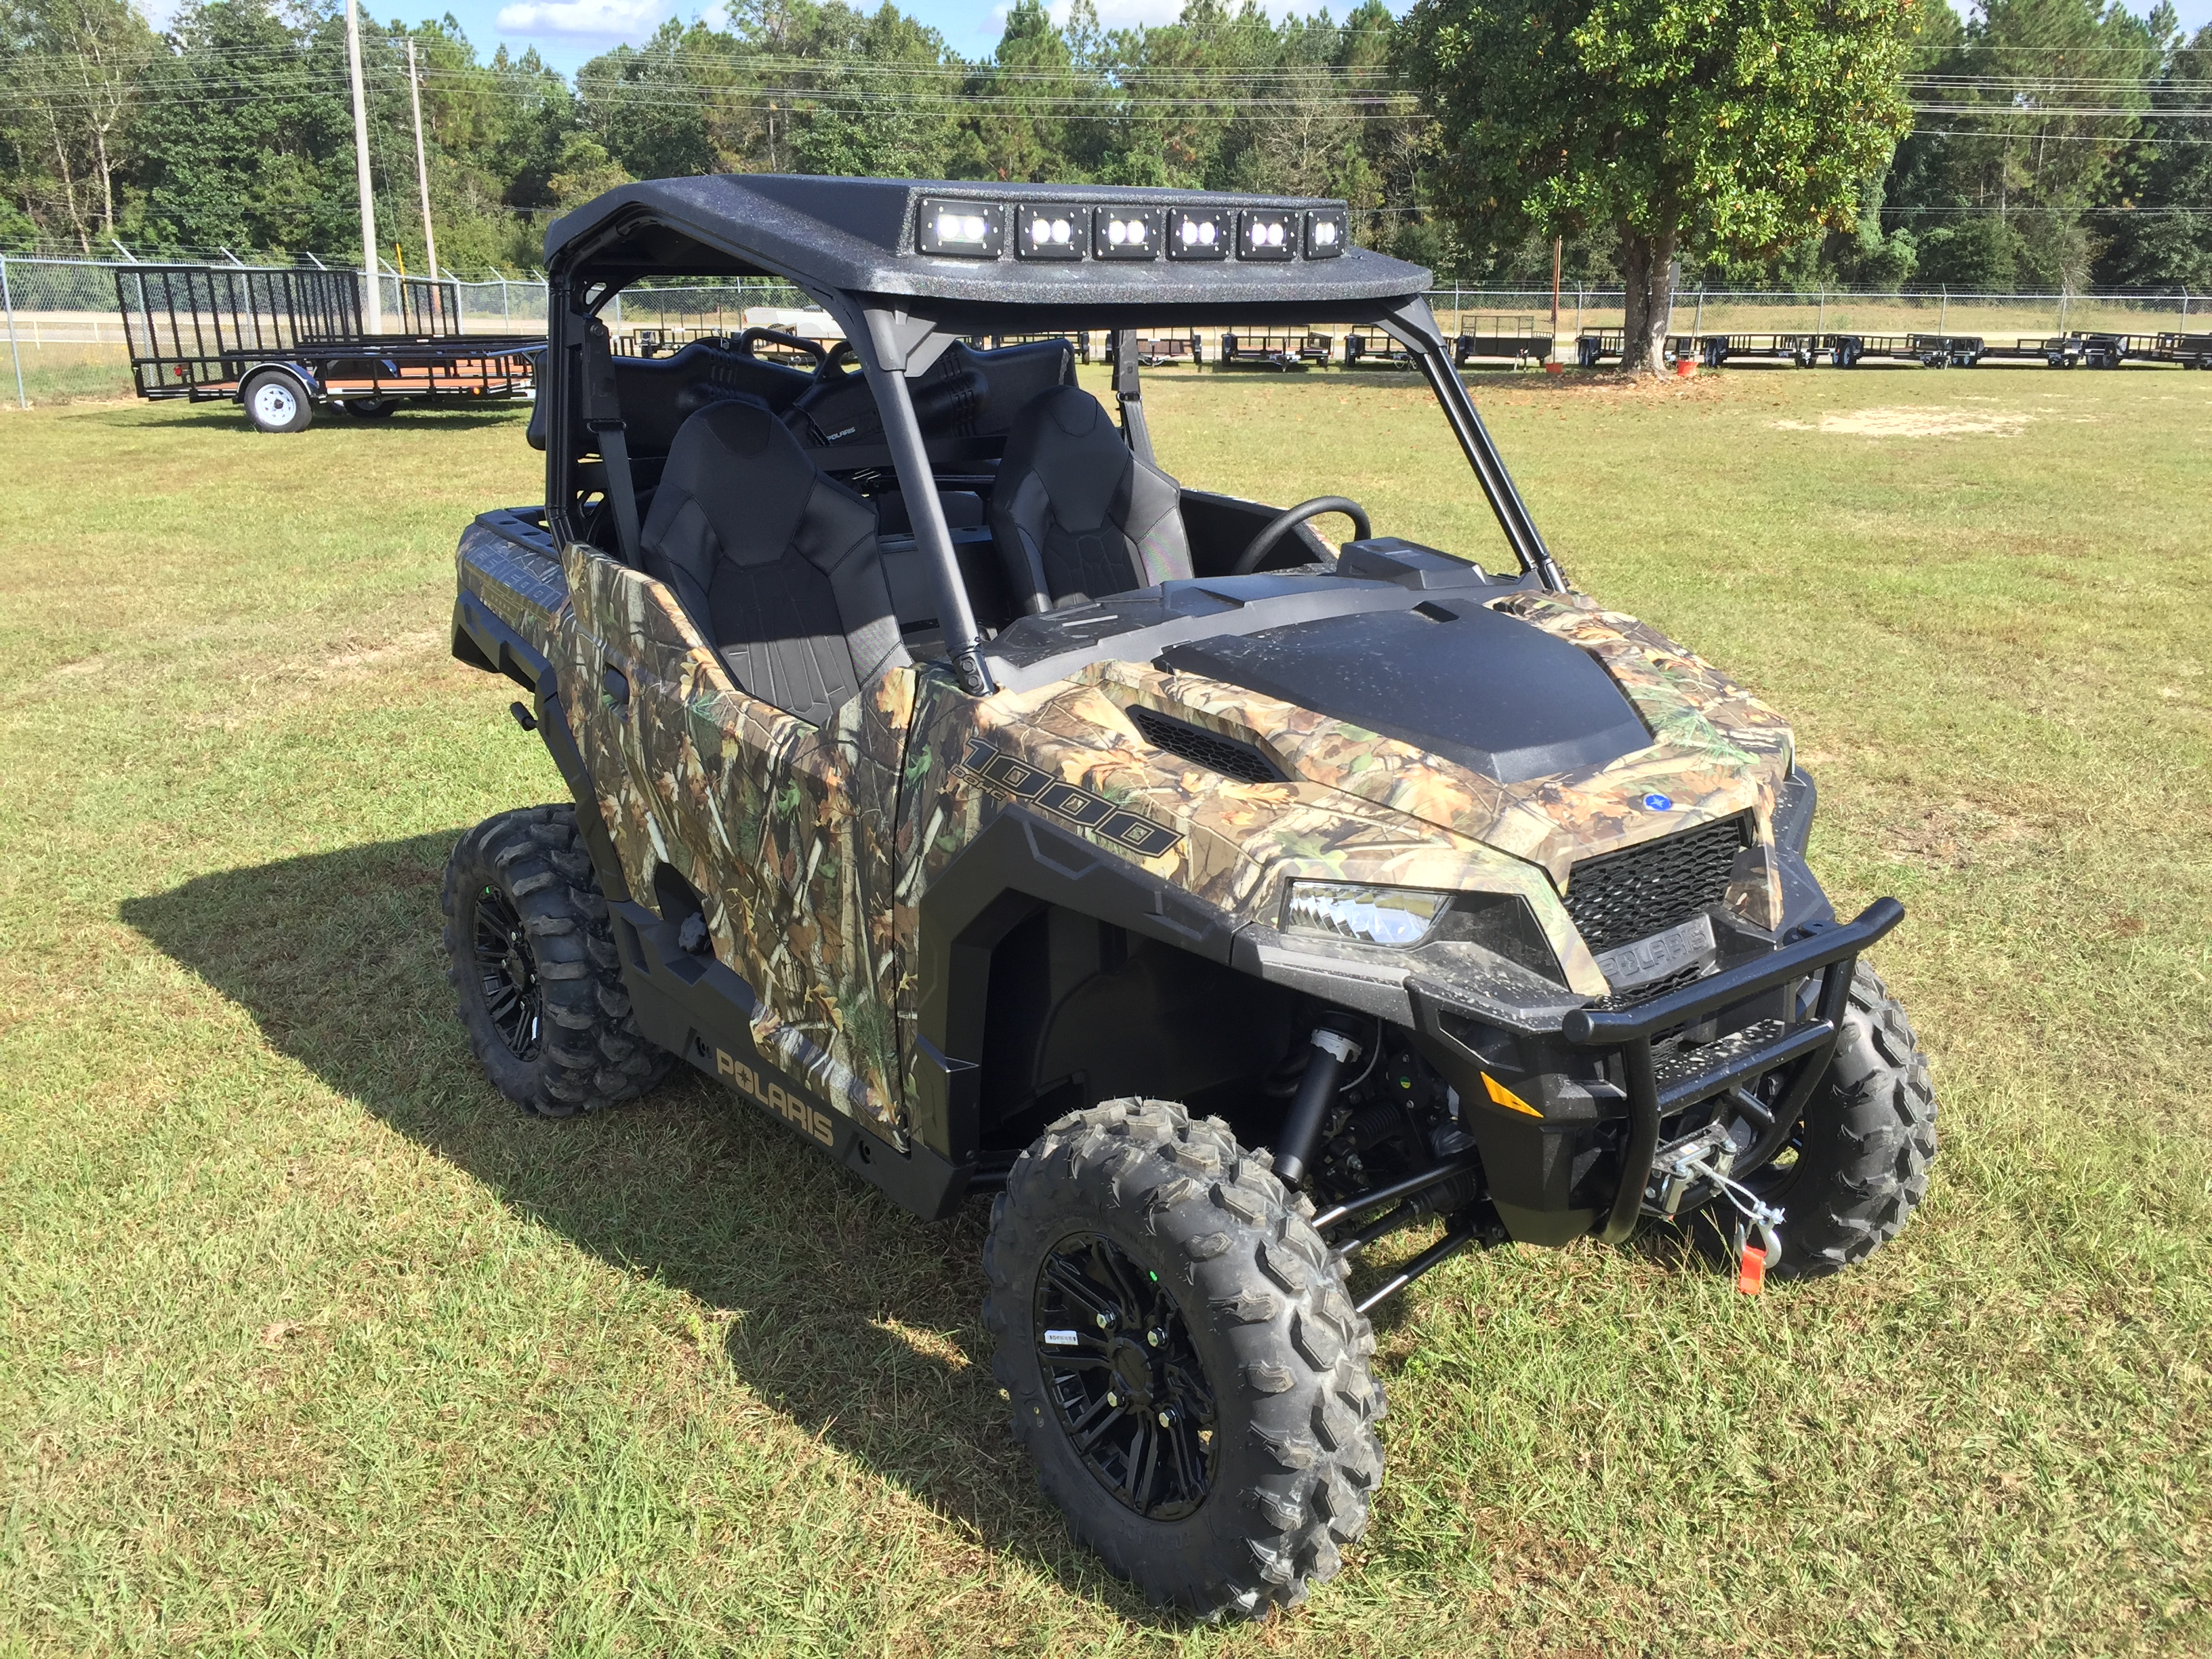 Only The Best Accessories For Your Atv Southernatv Com